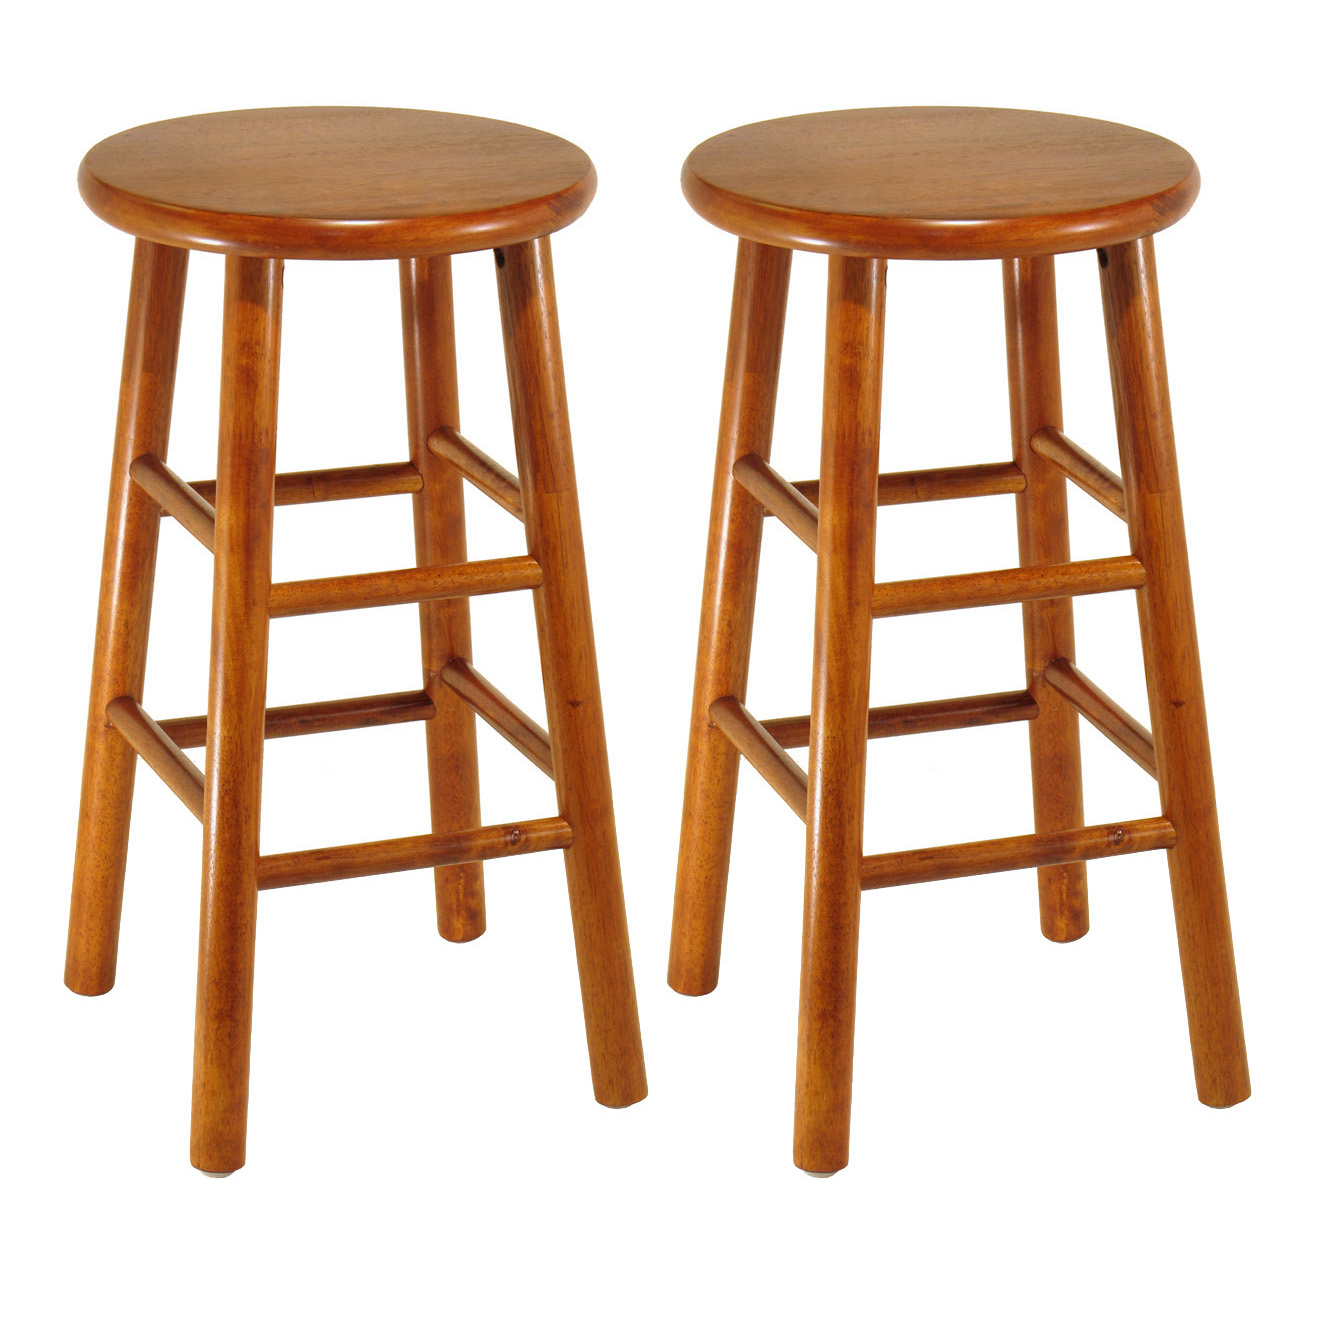 "Winsome Wood Tabby 24"" Beveled Seat Stools, Set of 2, Multiple Finish"